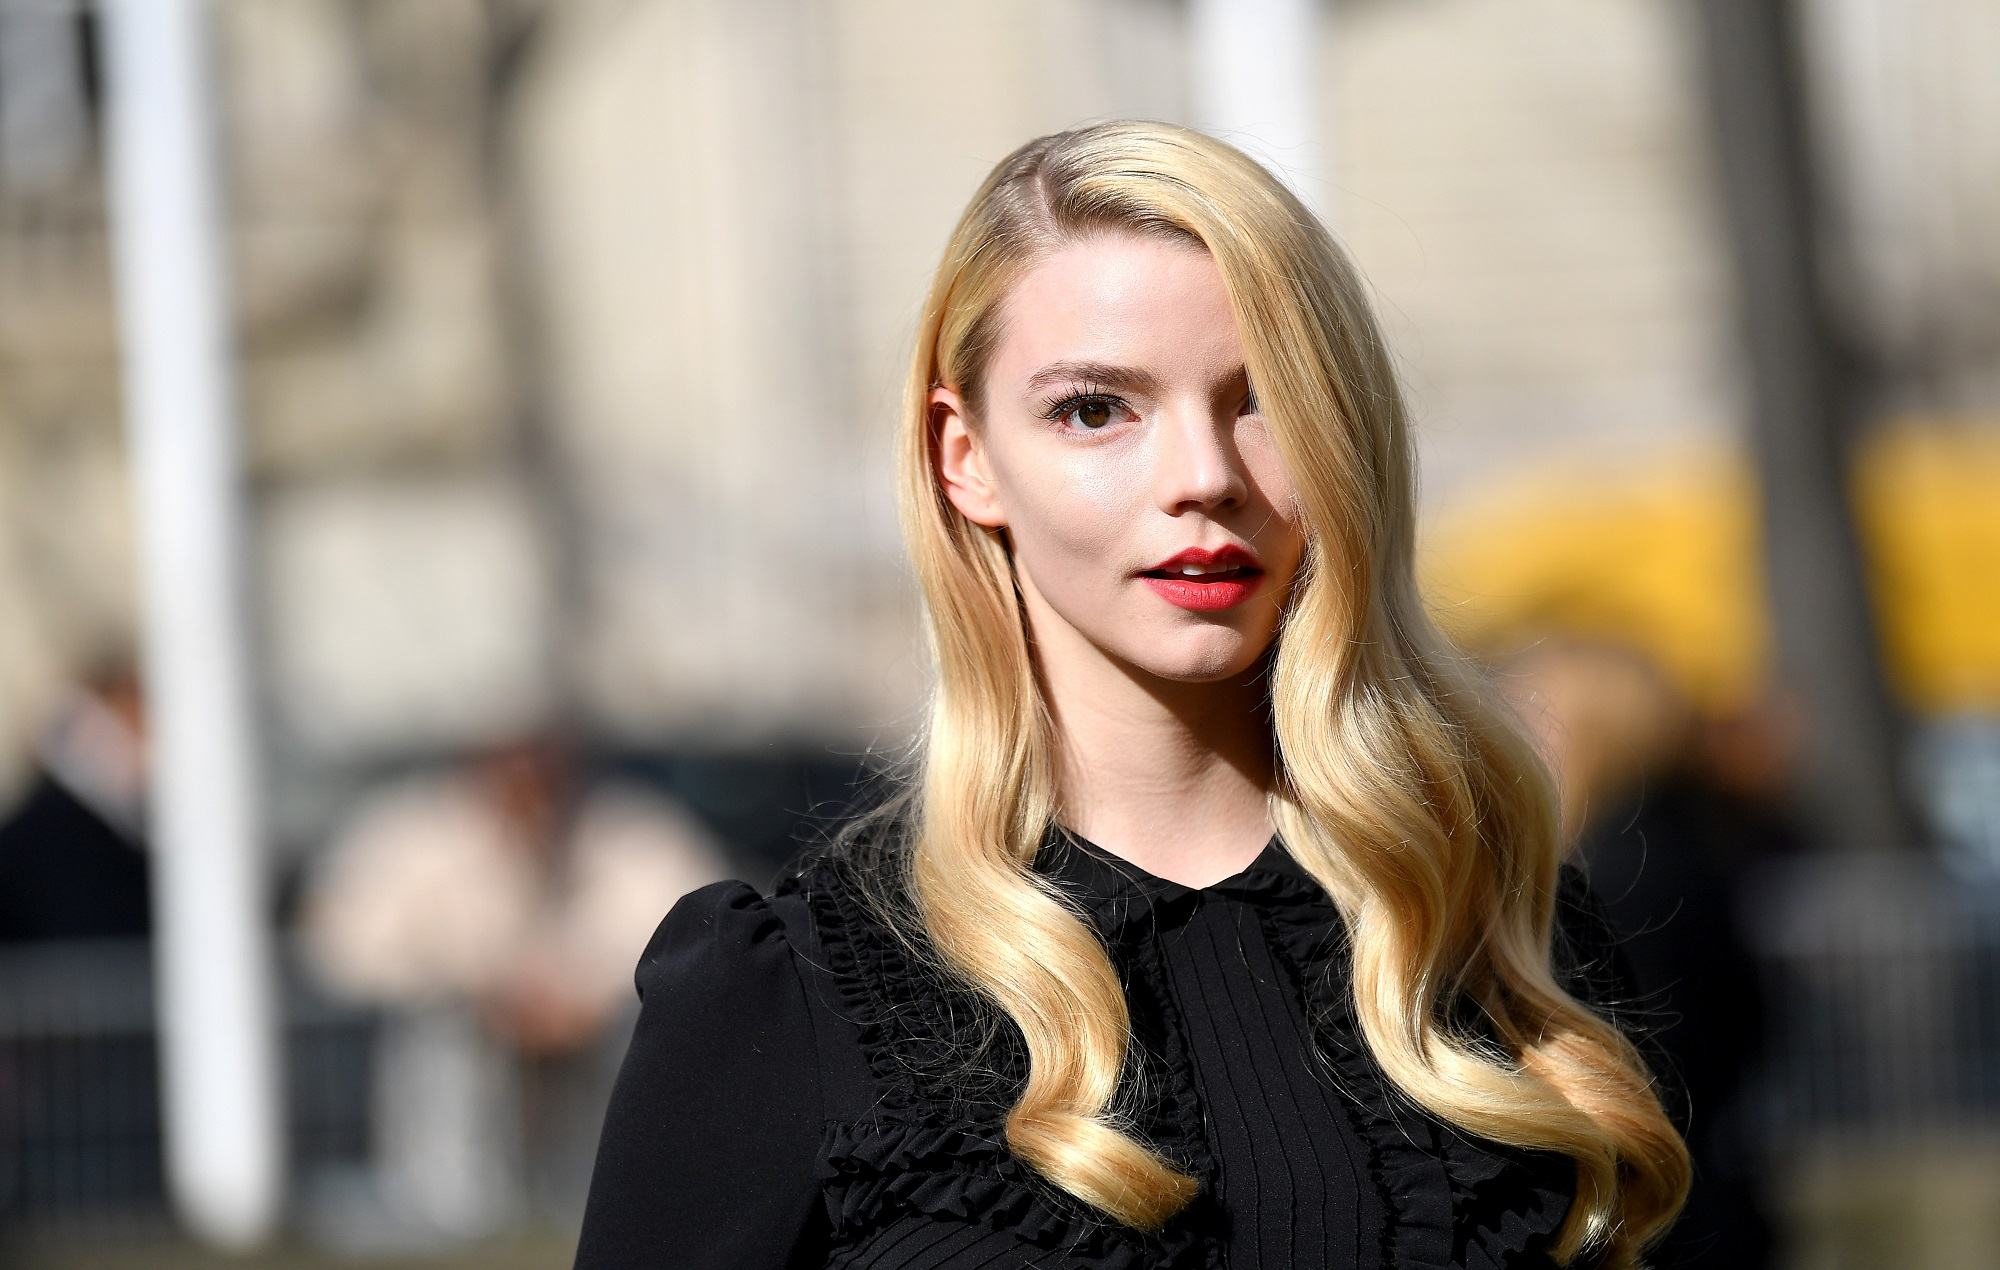 Anya Taylor Joy Has Been Announced To Play Furiosa In Mad Max Fury Road Prequel